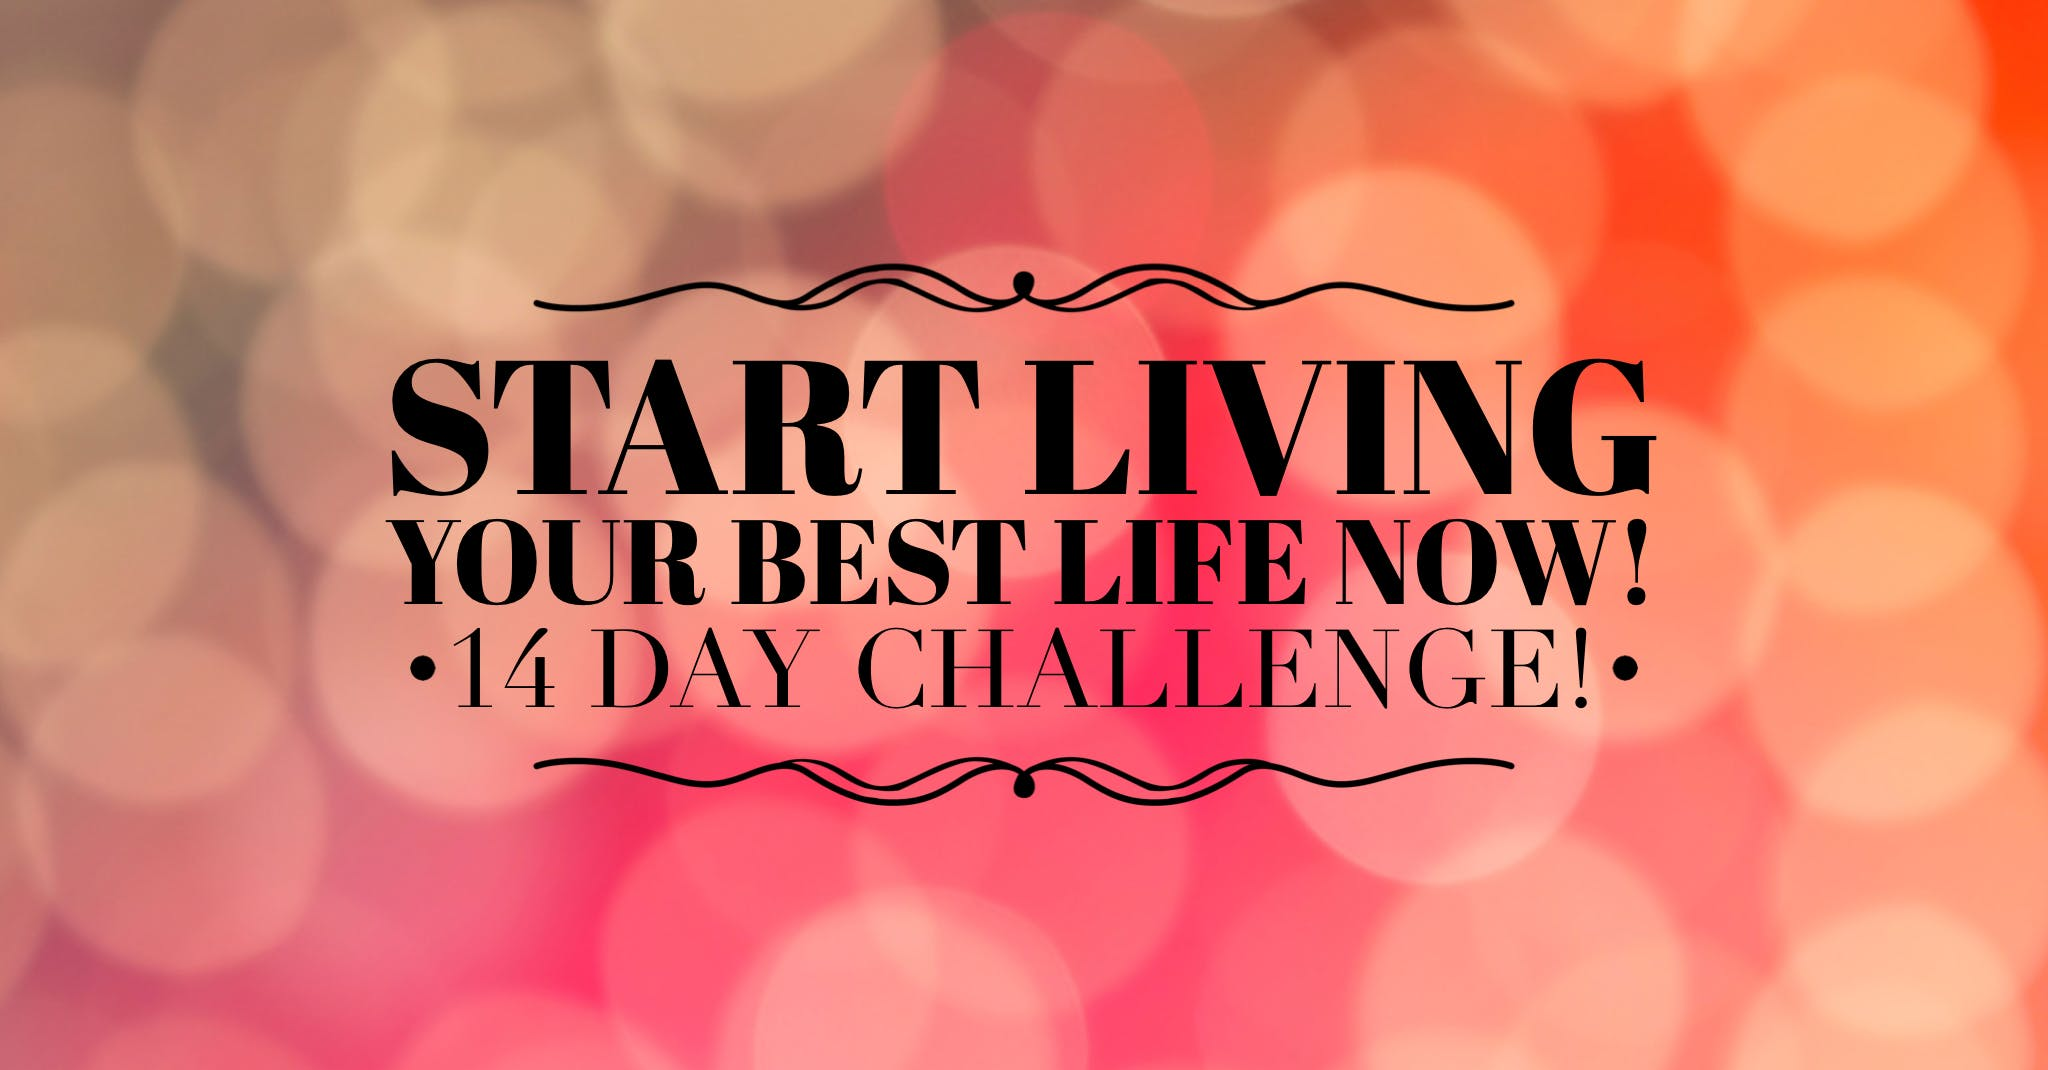 Start Living Your Best Life - 14 Day Challenge